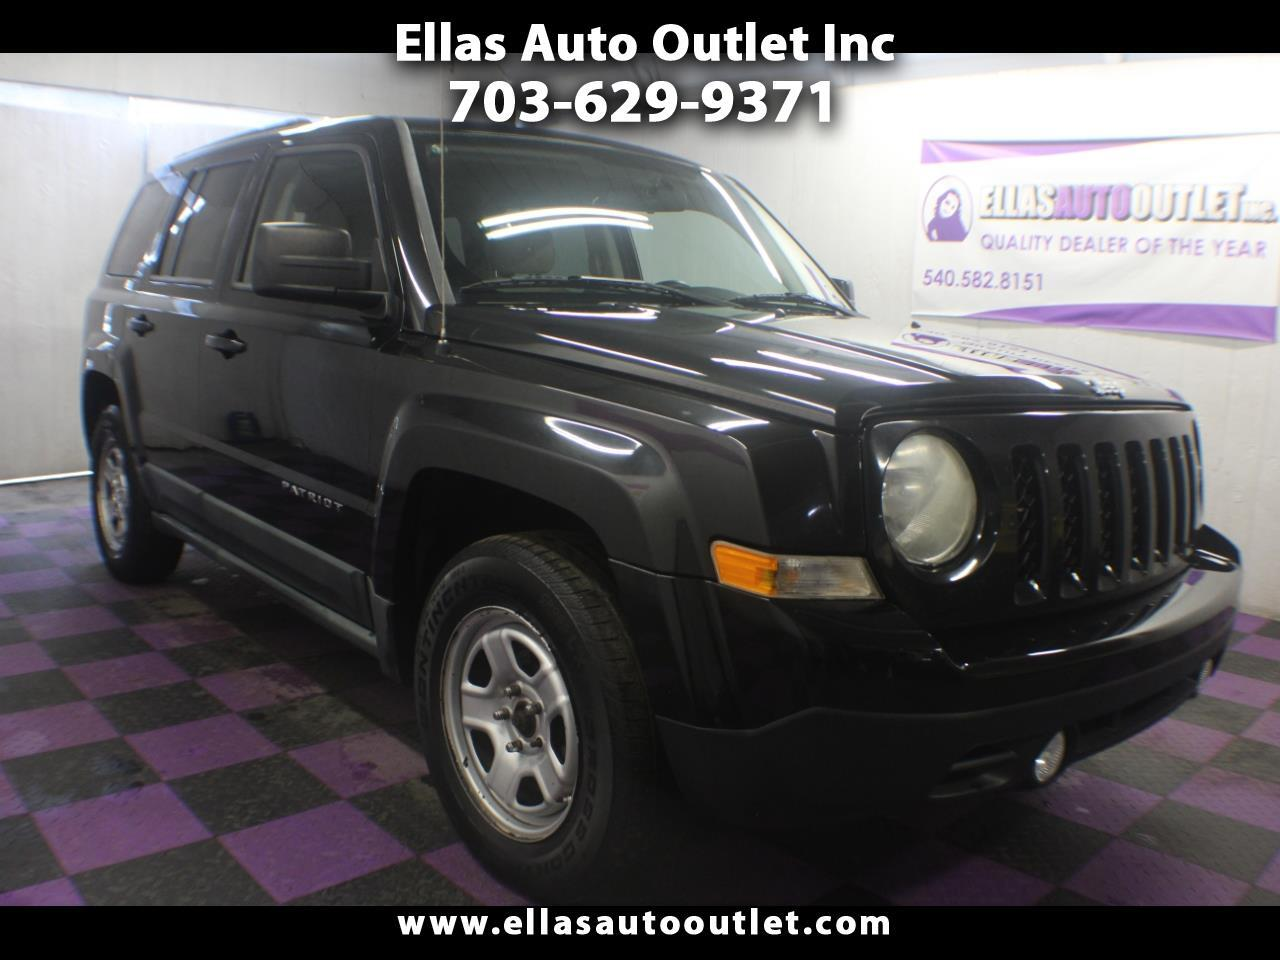 2011 Jeep Patriot FWD 4dr Sport